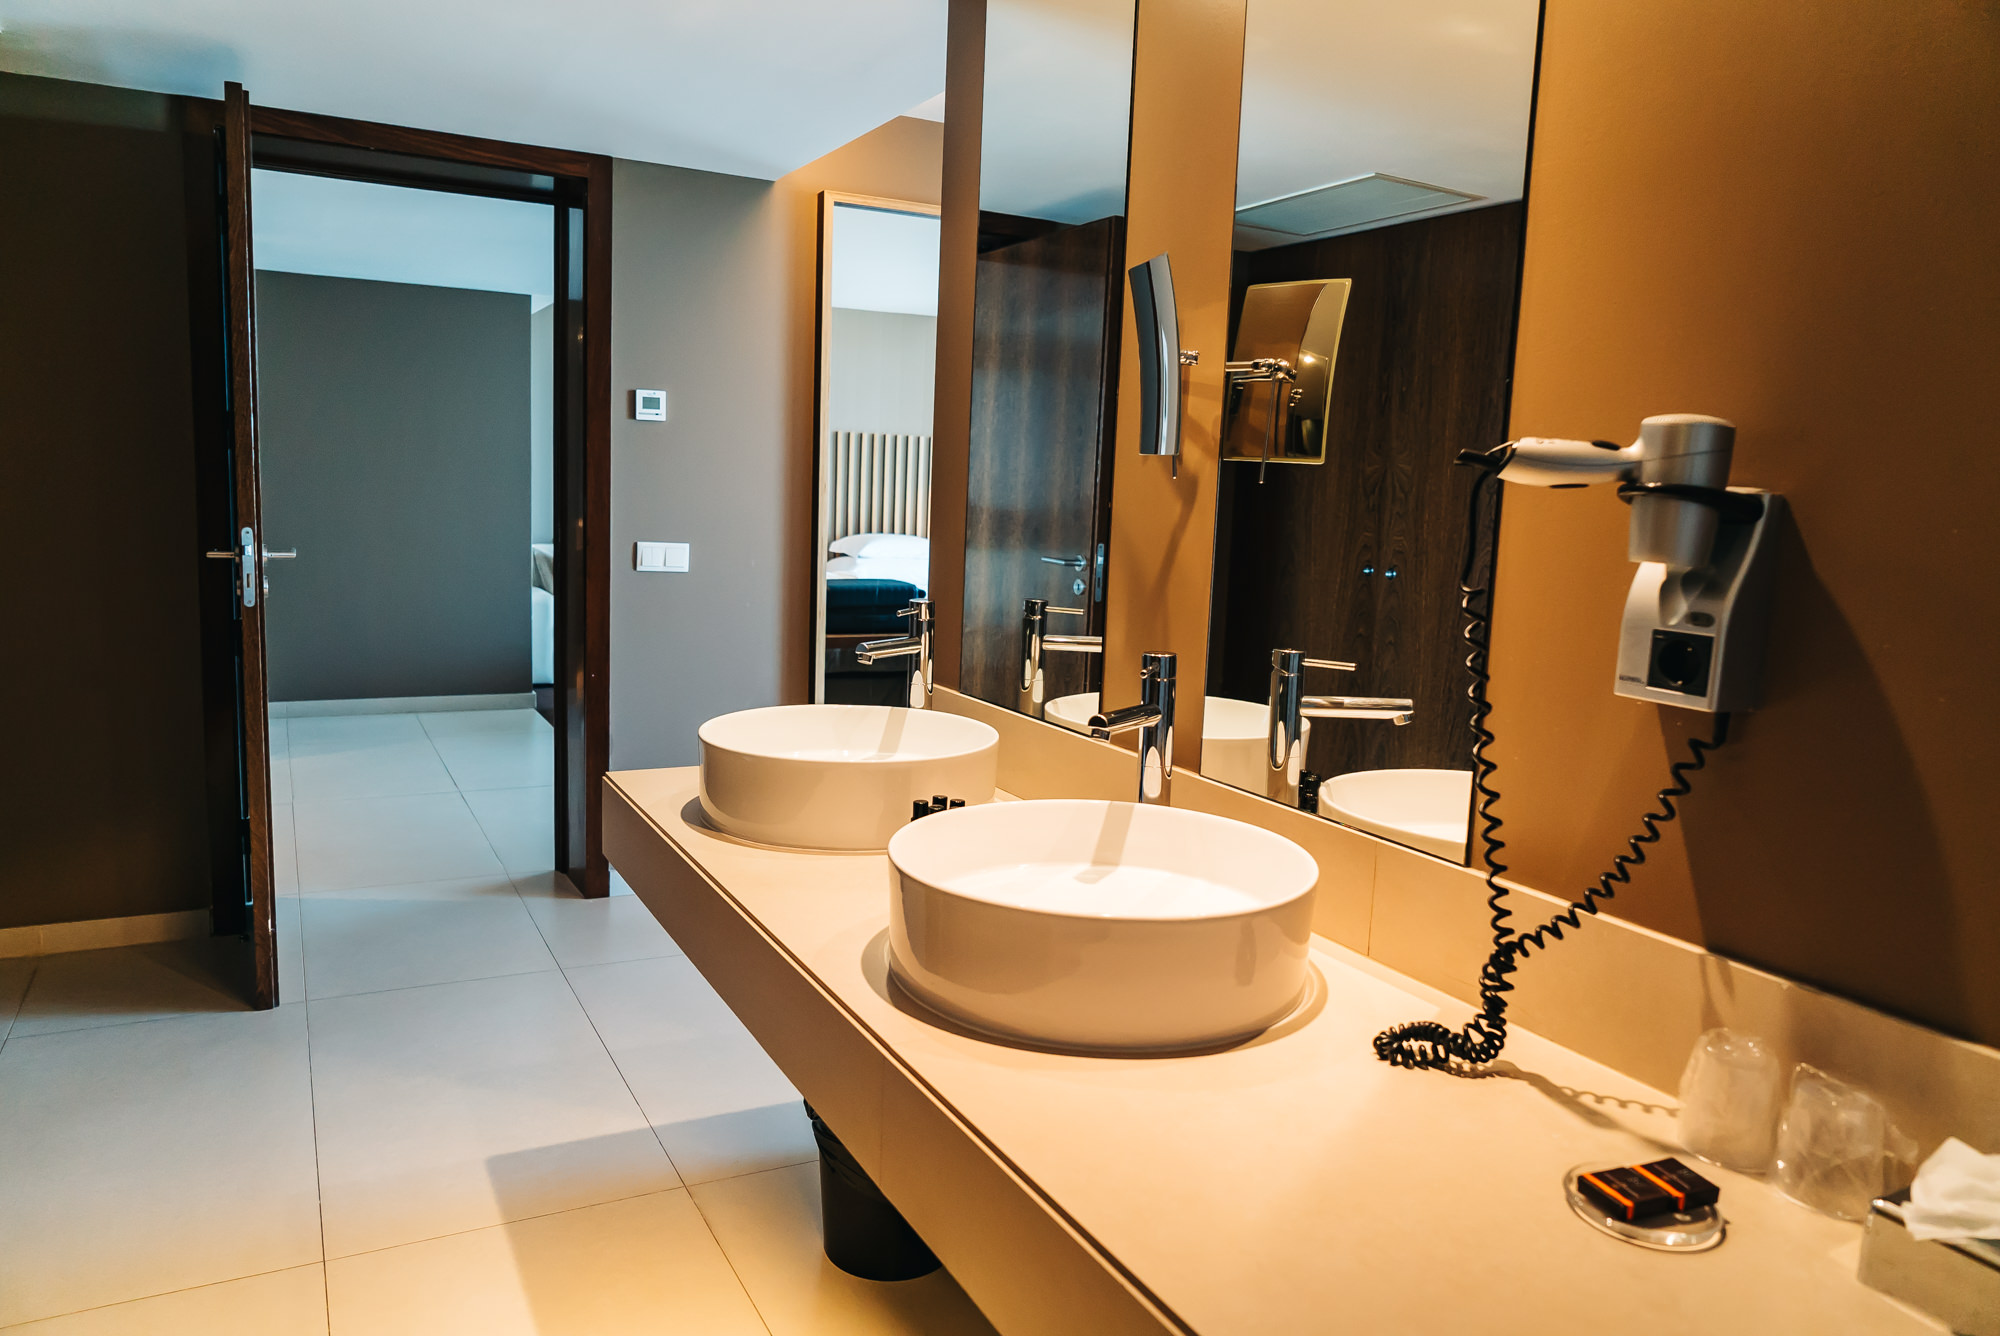 Main bathroom with two sinks